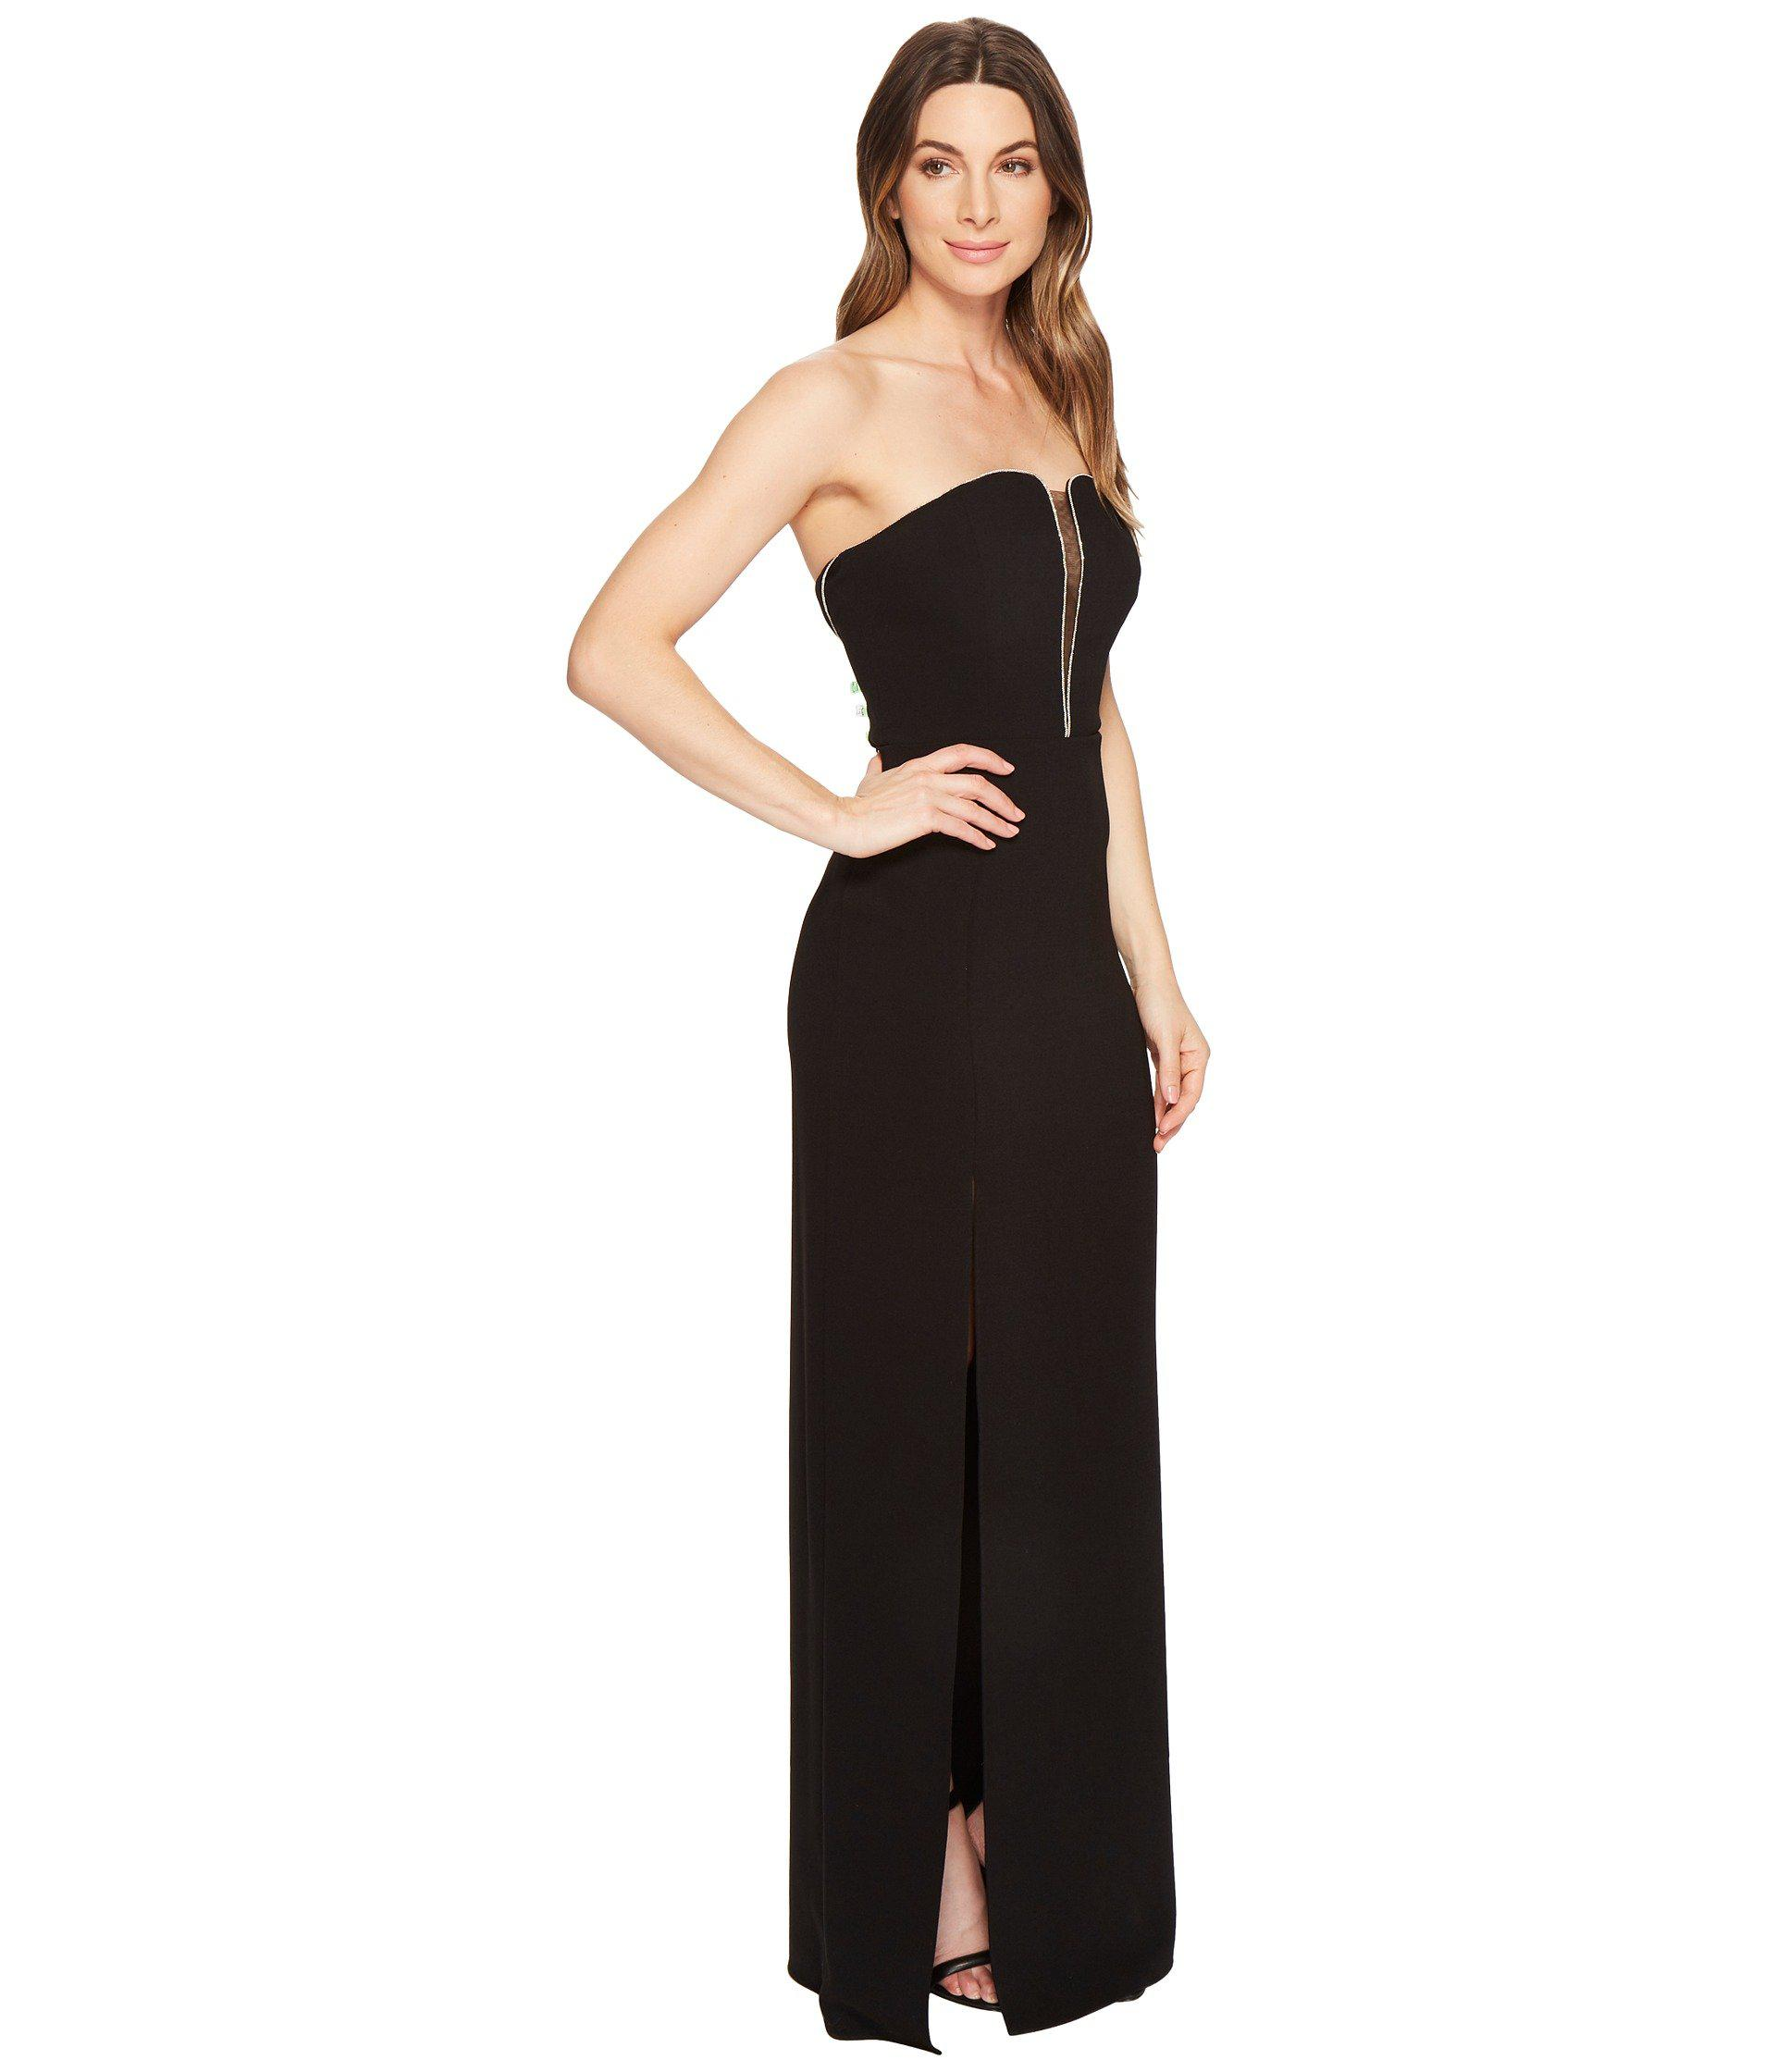 91dc2fc0cc70 Halston Strapless Deep V-neck Fitted Gown in Black - Lyst